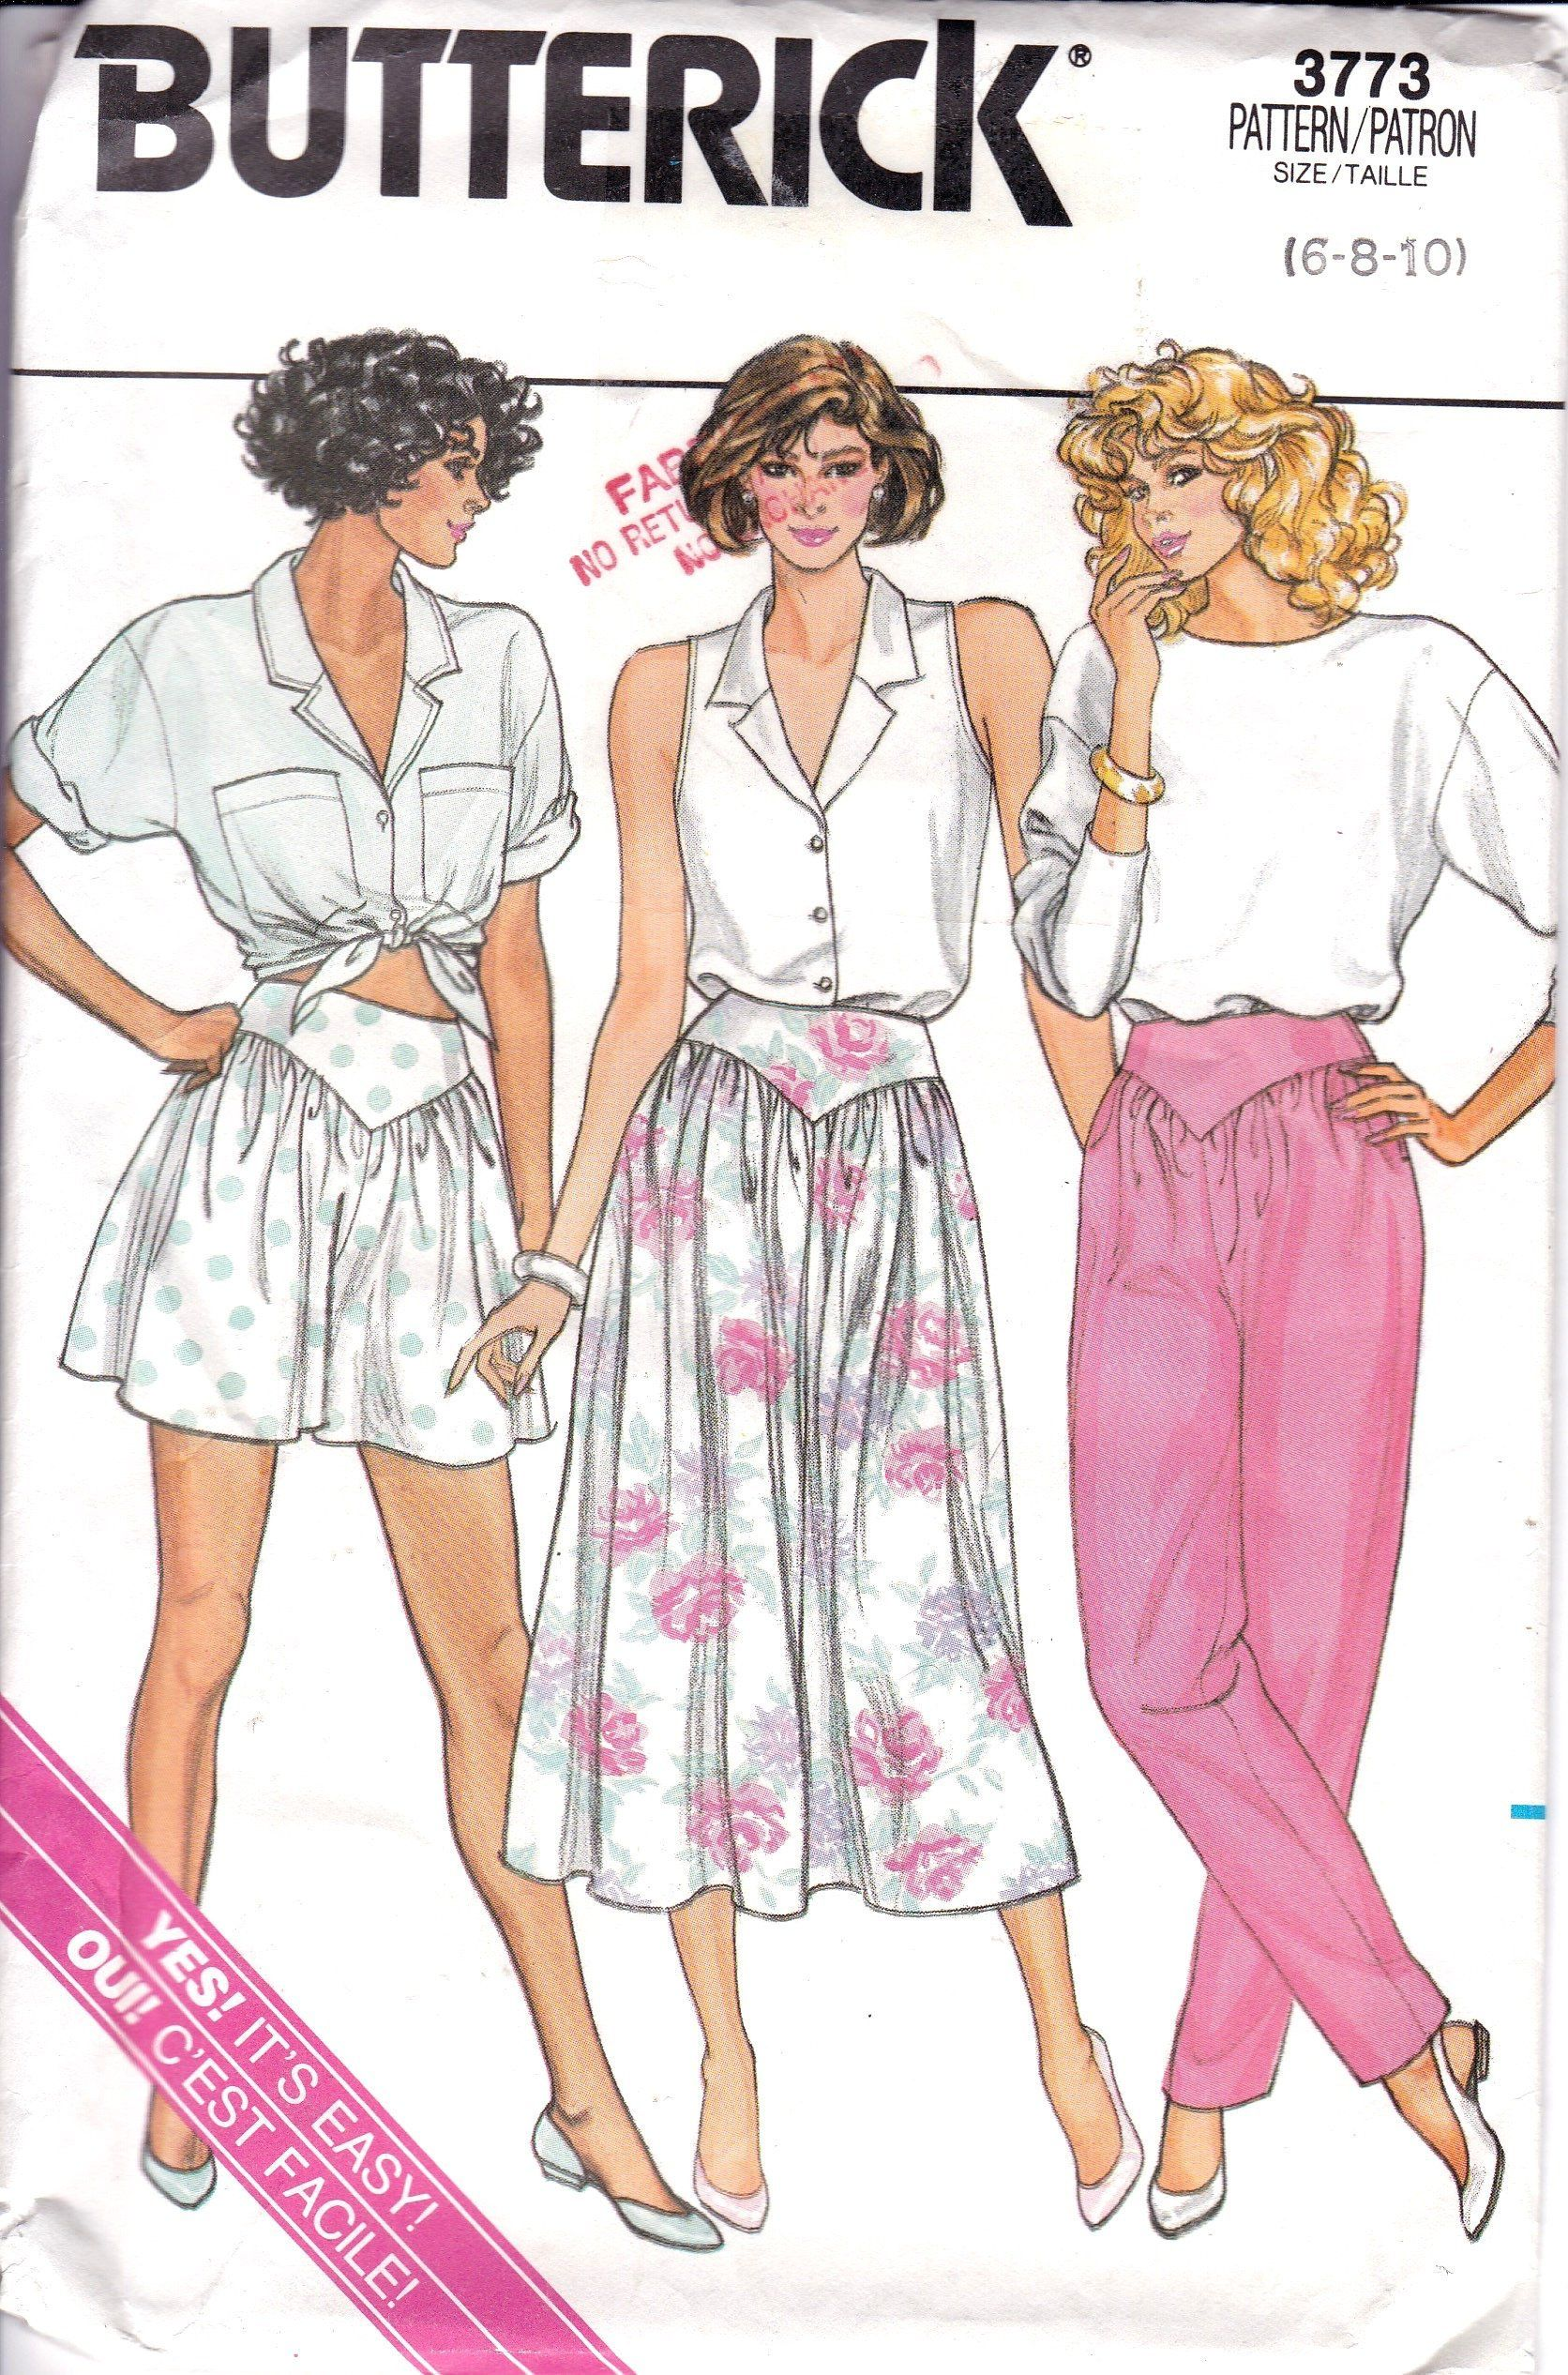 b4c7bfed7a Vintage 1986, Mid Thigh Culottes , Midi Skirt and Tapered Pants, Contour  Waist, Fabric Gathered into Bottom of V Shaped Yoke, Butterick 3773 by ...